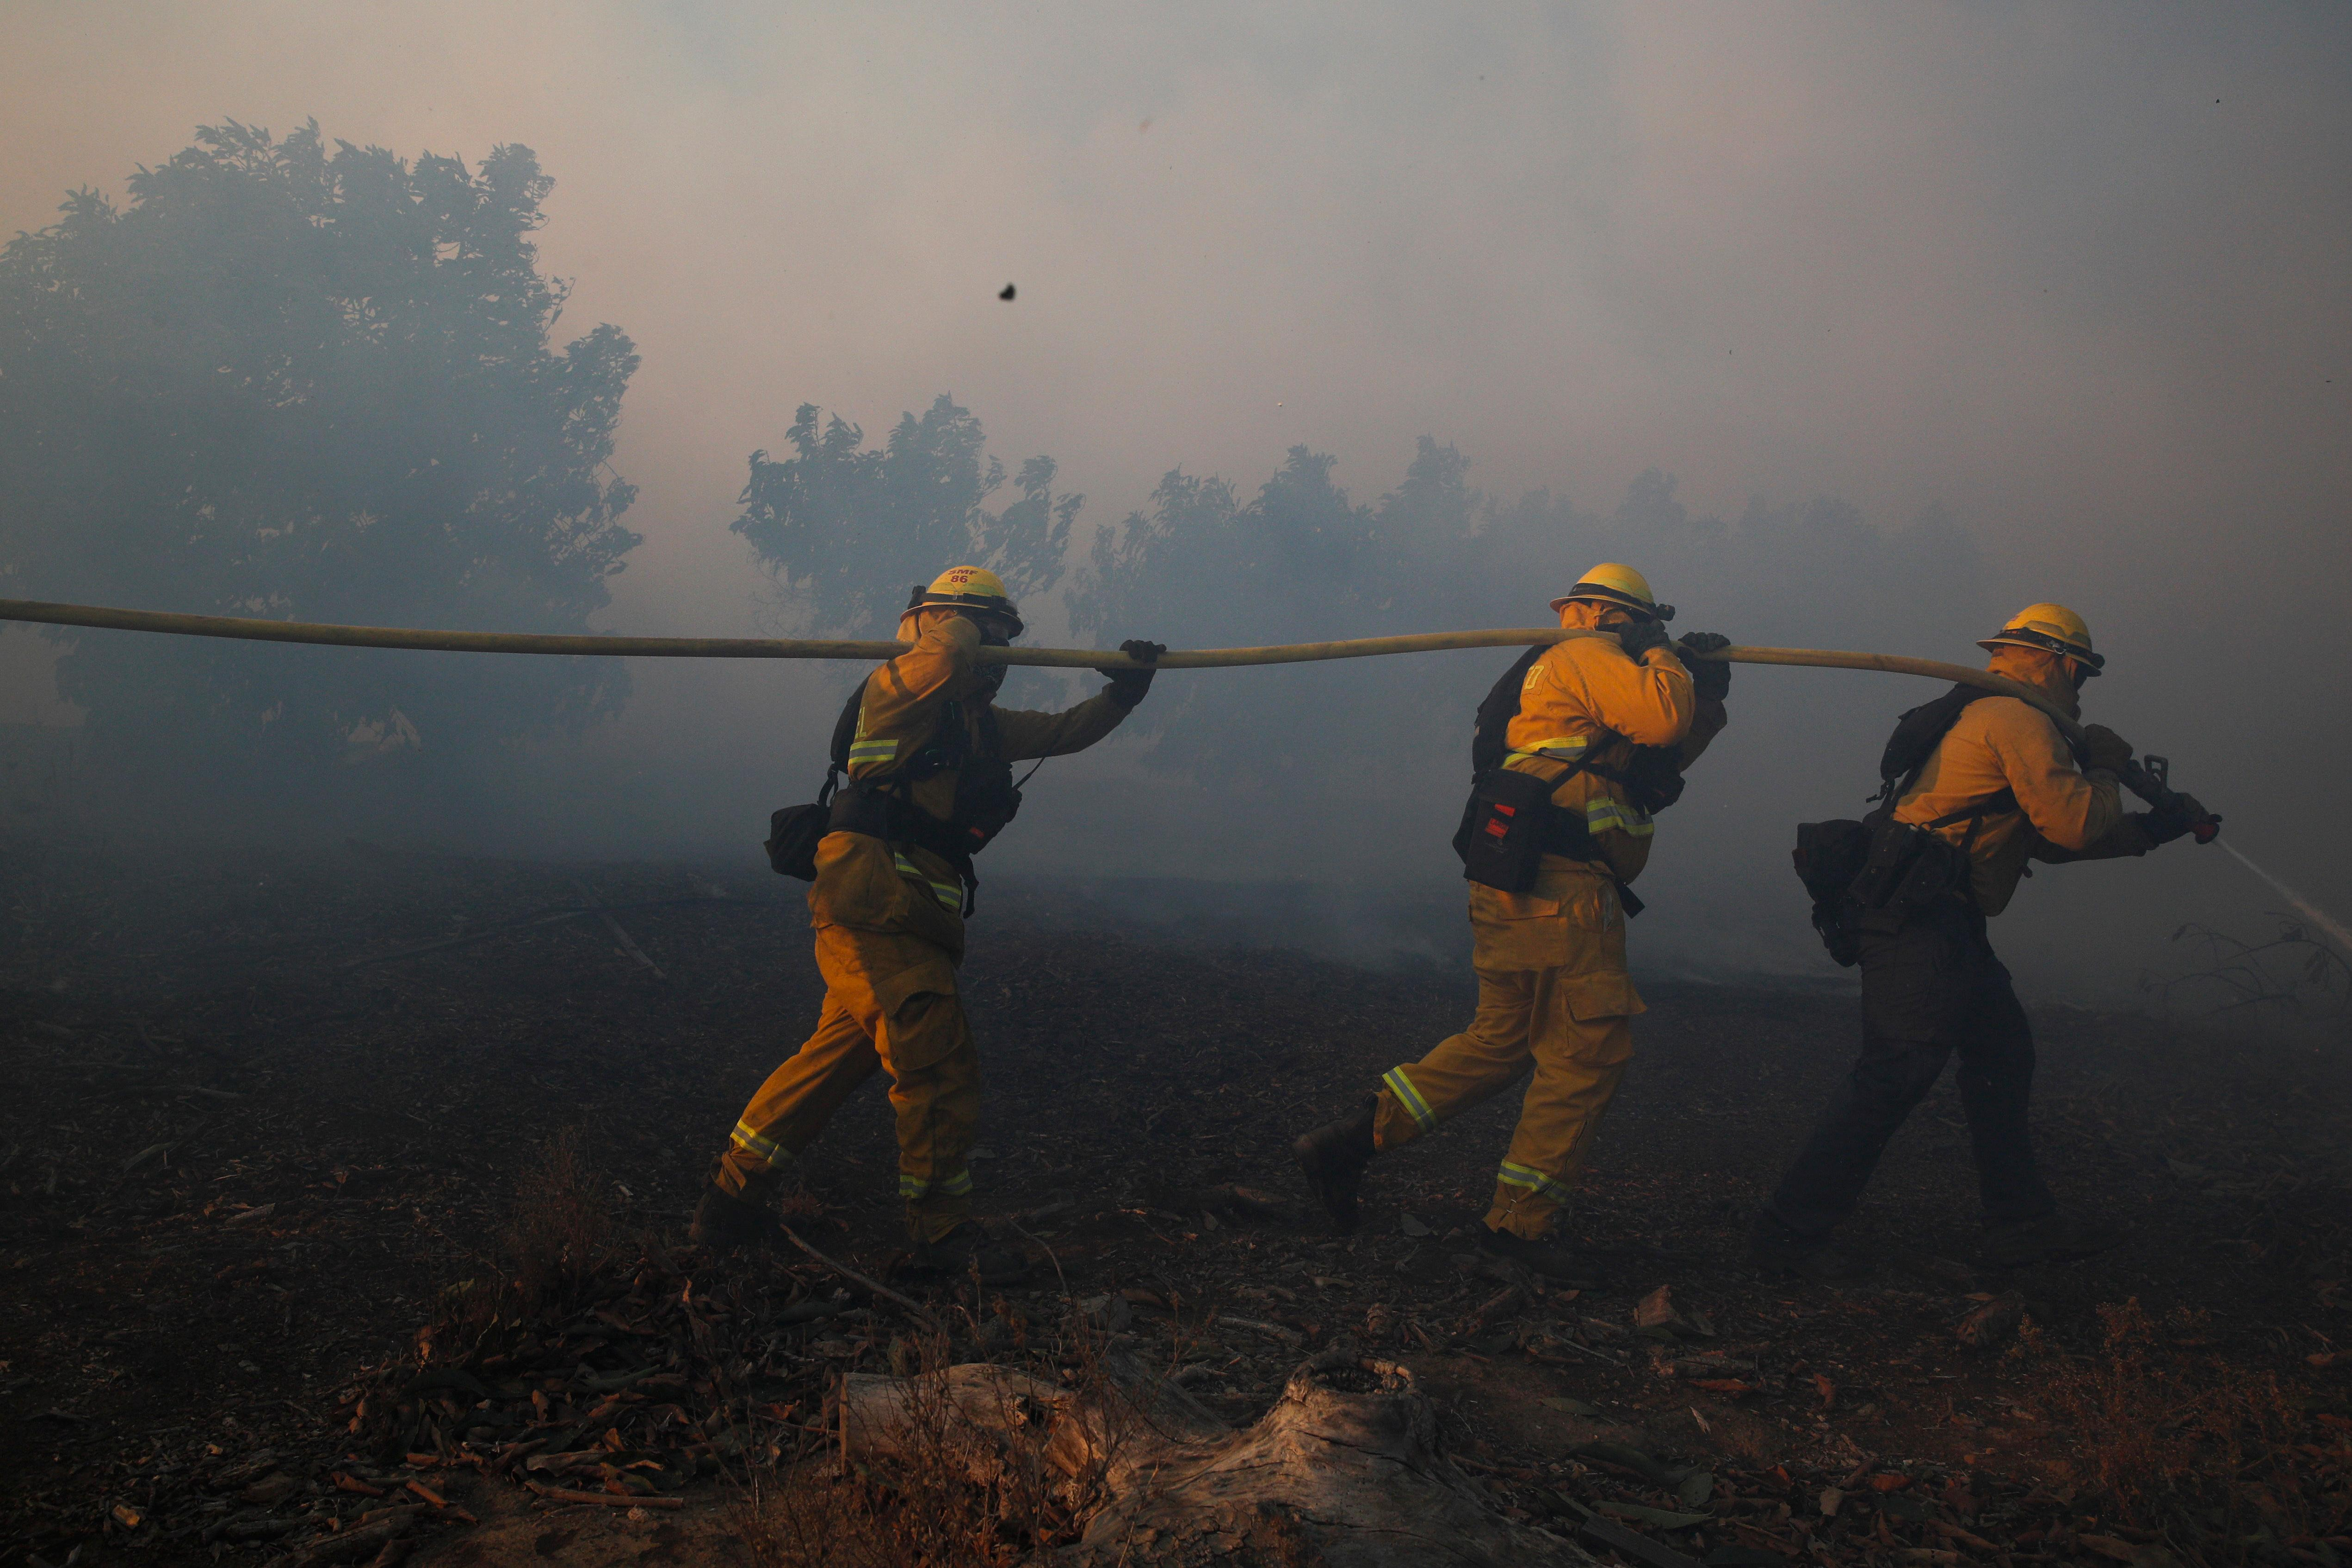 Firefighters put out a wildfire burning in an orchard Tuesday, Dec. 5, 2017, in Santa Paula, Calif. Raked by ferocious Santa Ana winds, explosive wildfires northwest of Los Angeles and in the city's foothills burned a psychiatric hospital and scores of homes and other structures Tuesday and forced the evacuation of tens of thousands of people. (AP Photo/Jae C. Hong)